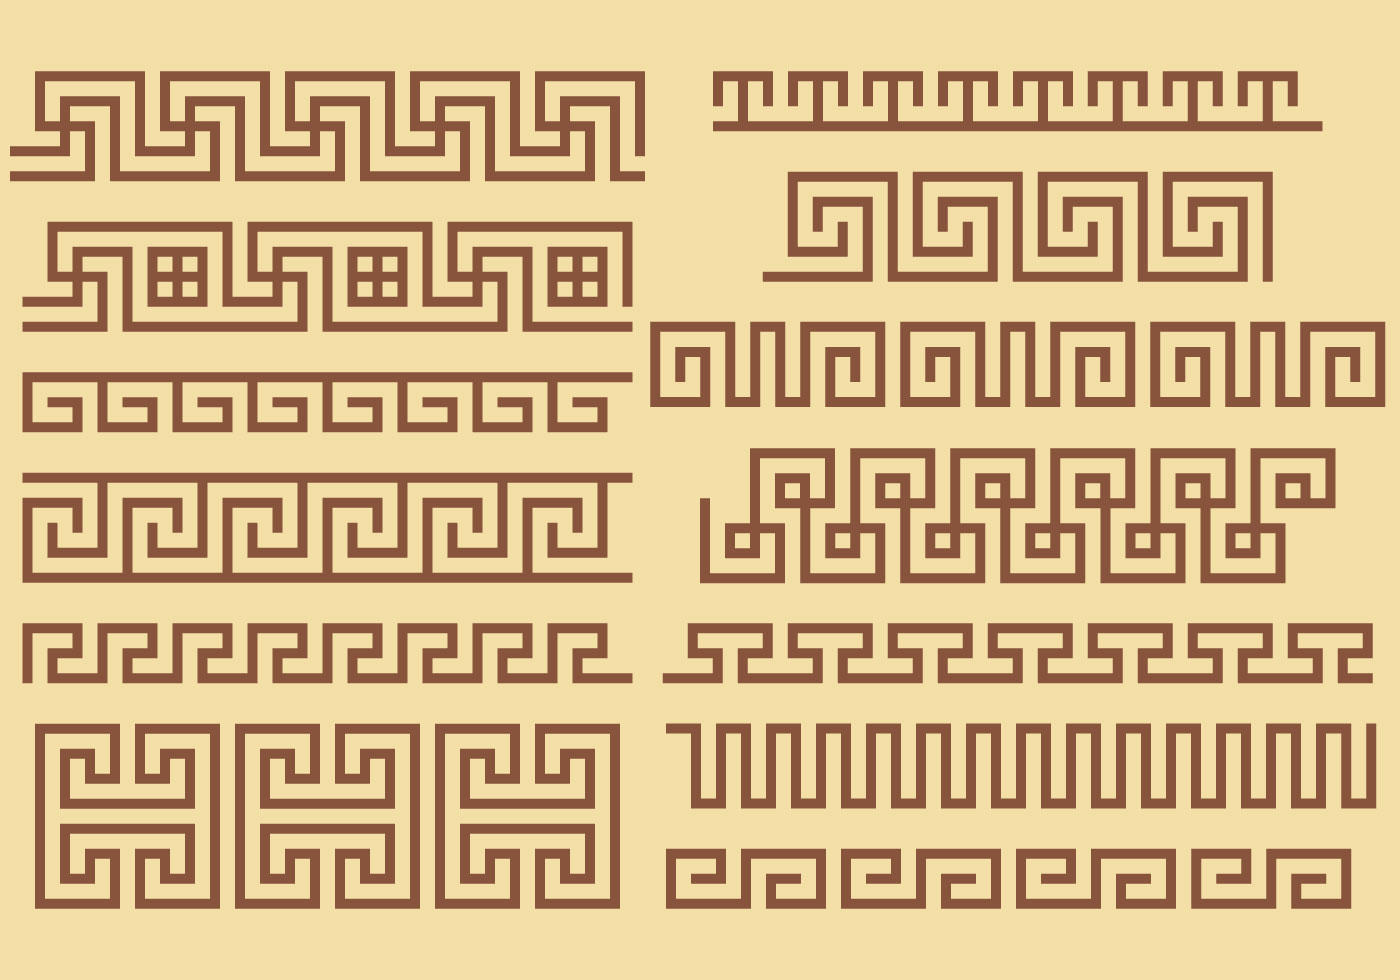 Greek Key Border Vectors - Download Free Vector Art, Stock ... Classical Music Background Designs